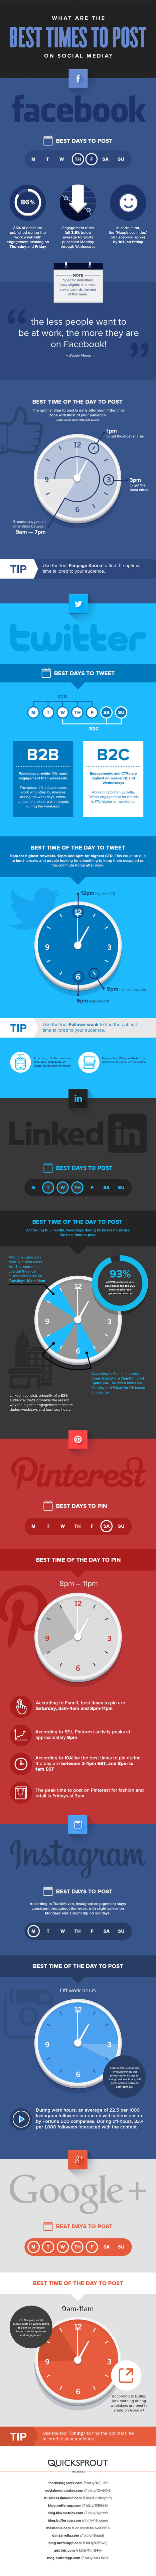 What Are The Best Times & Days to Post to Social Media? #Infographic | Multimedia Journalism | Scoop.it